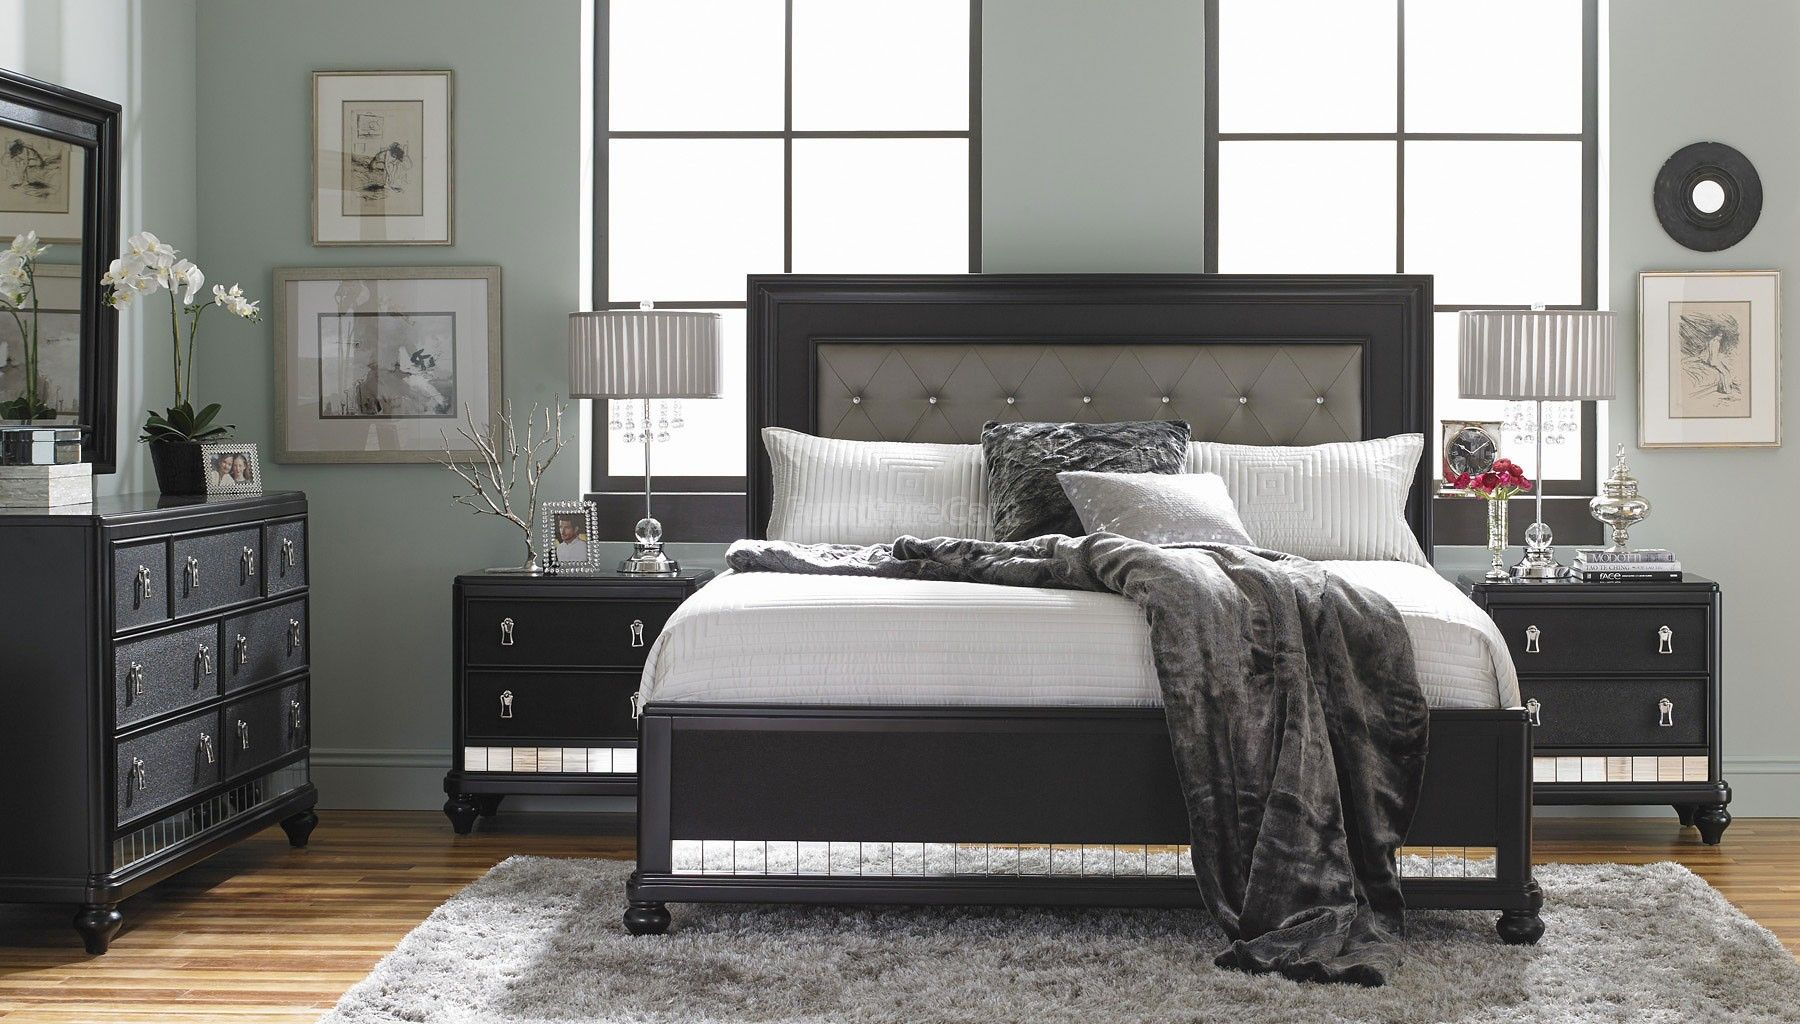 samuel height planking furniture lawrence trim royal queen ruff hewn bed item products with staggered threshold width hewnqueen